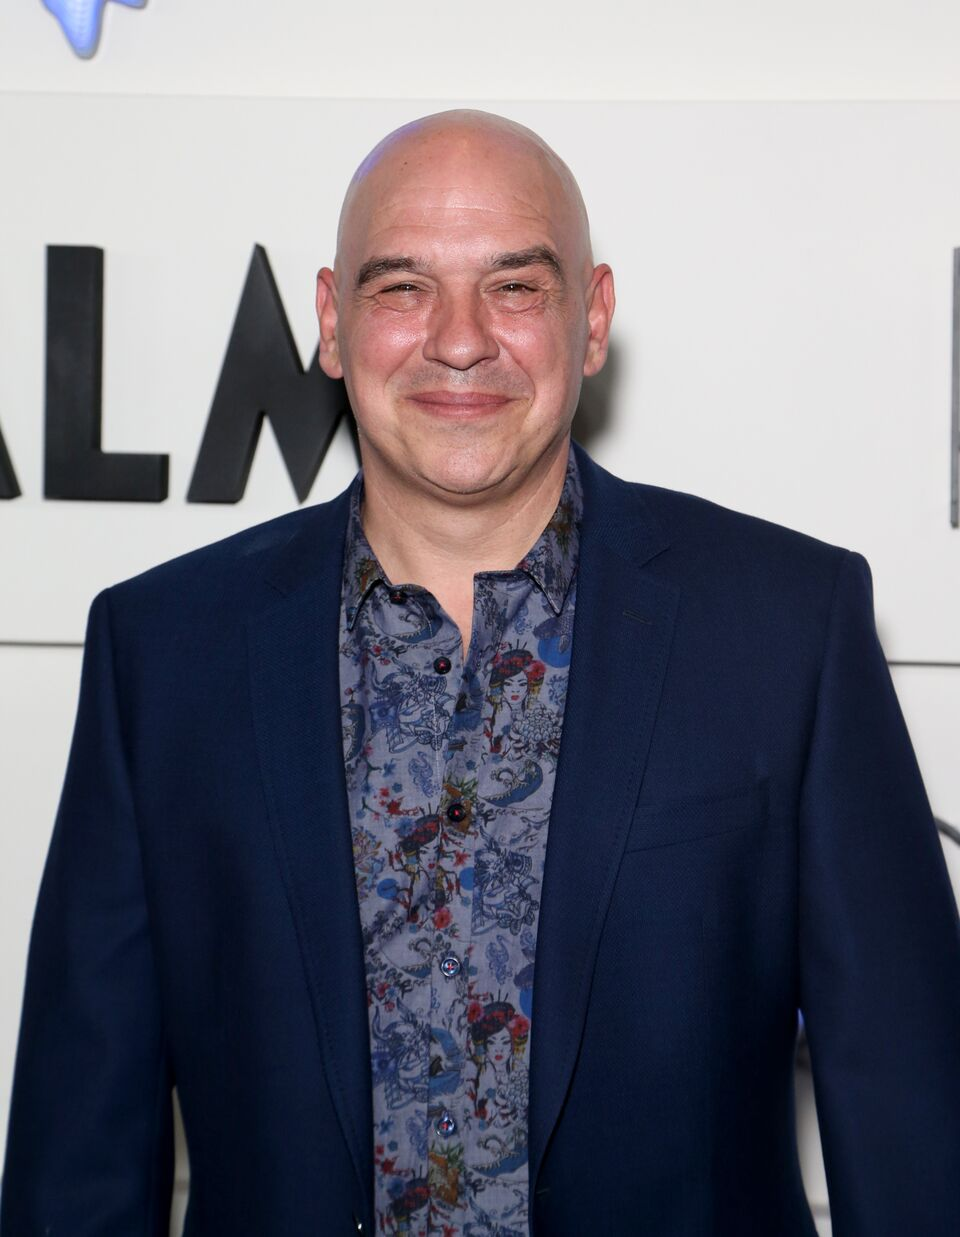 Michael Symon attends the grand opening of KAOS. | Source: Getty Images